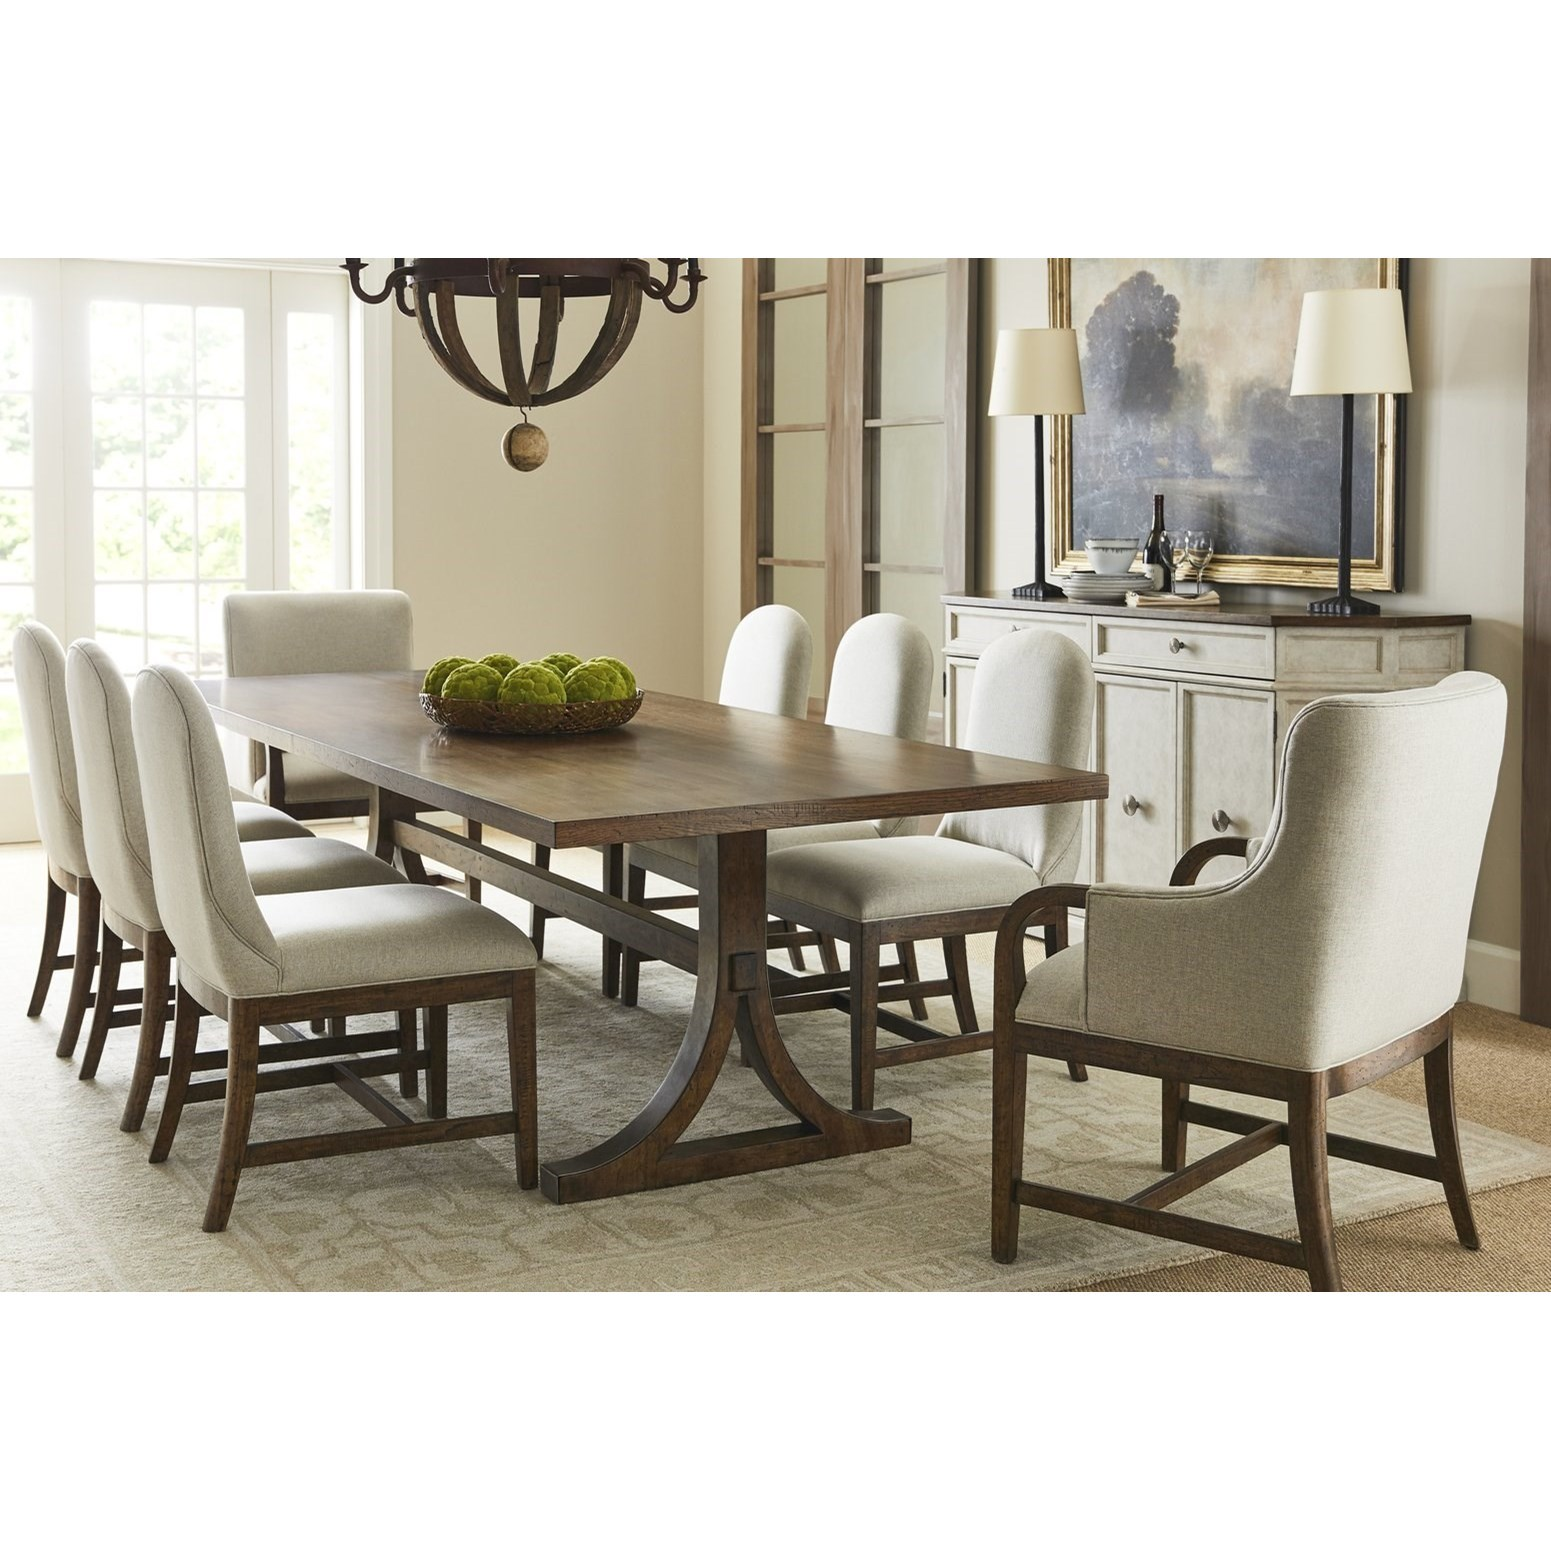 Hillside Formal Dining Group by Stanley Furniture at Alison Craig Home Furnishings